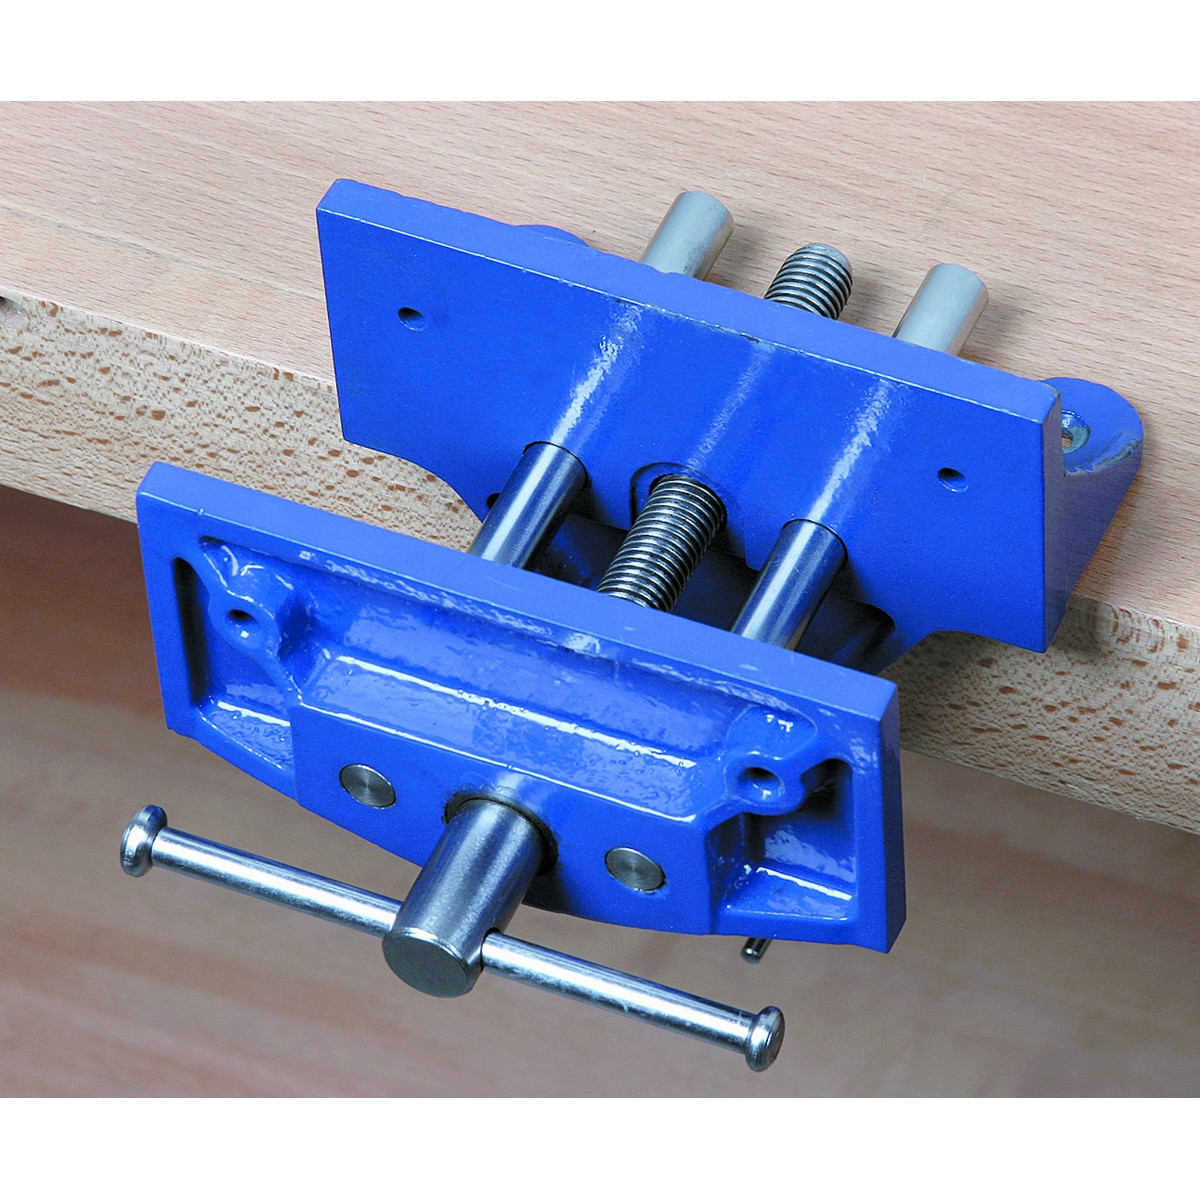 6 in. Portable Carpenter's Vise